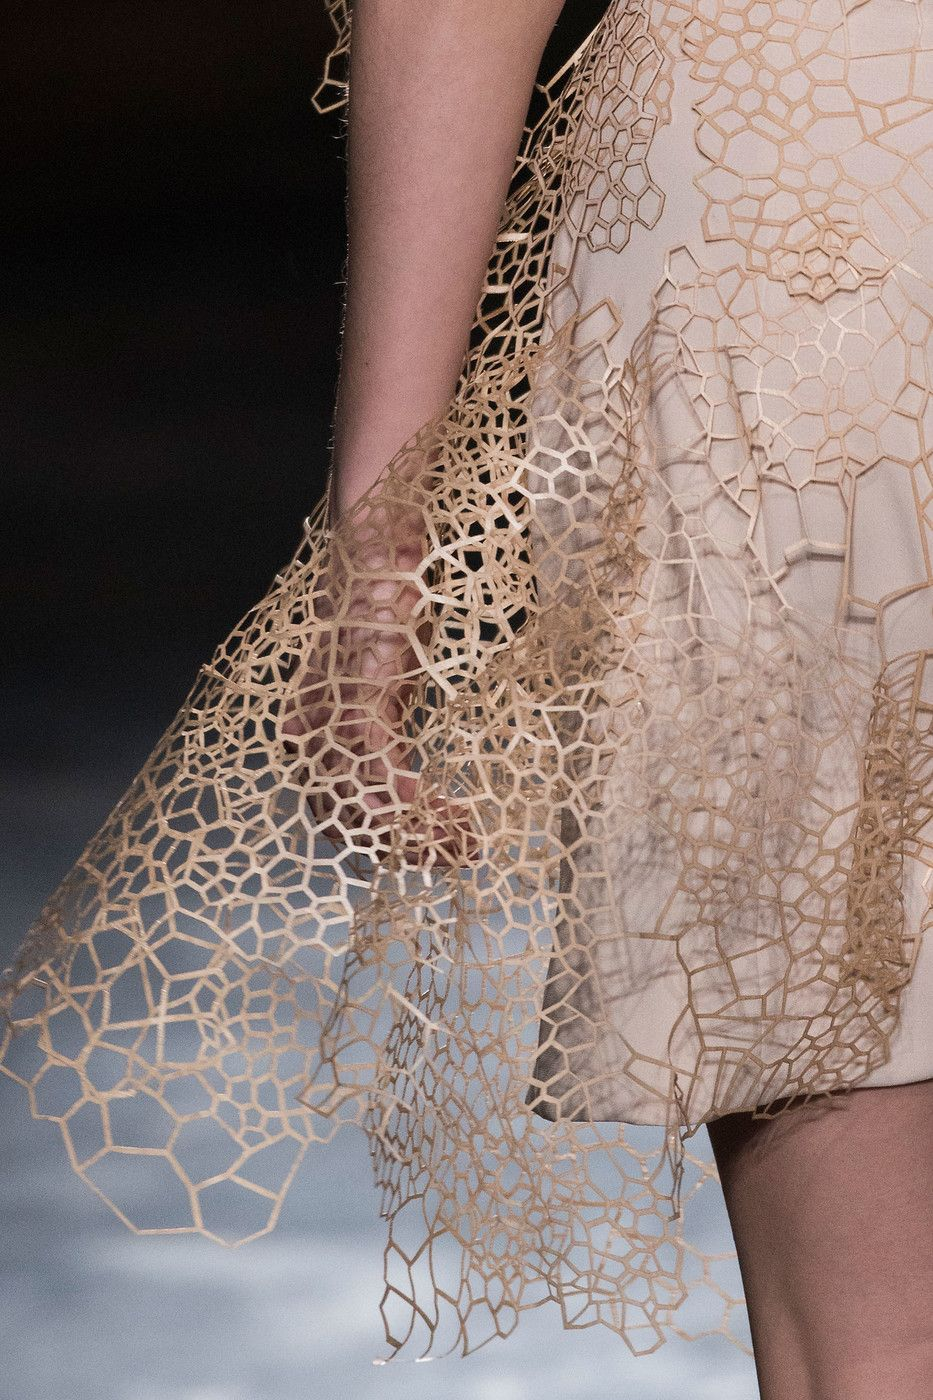 laser cut dress with intricate organic patterns innovative textiles fashion design detail. Black Bedroom Furniture Sets. Home Design Ideas